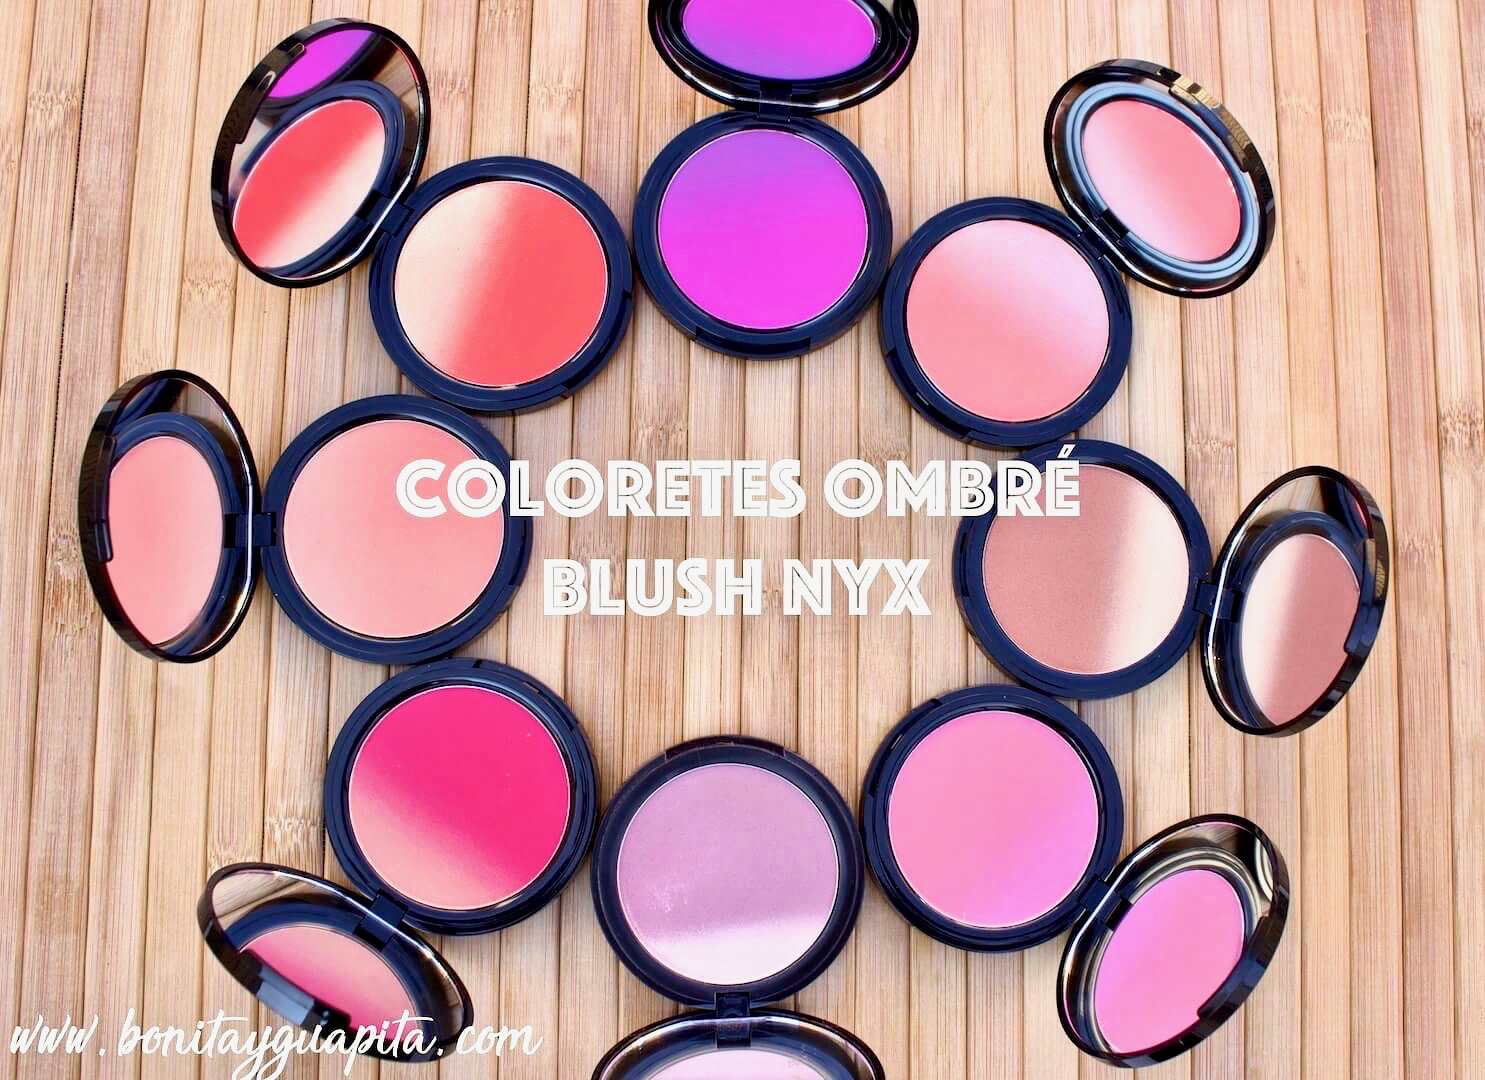 Coloretes Ombre Blush de NYX